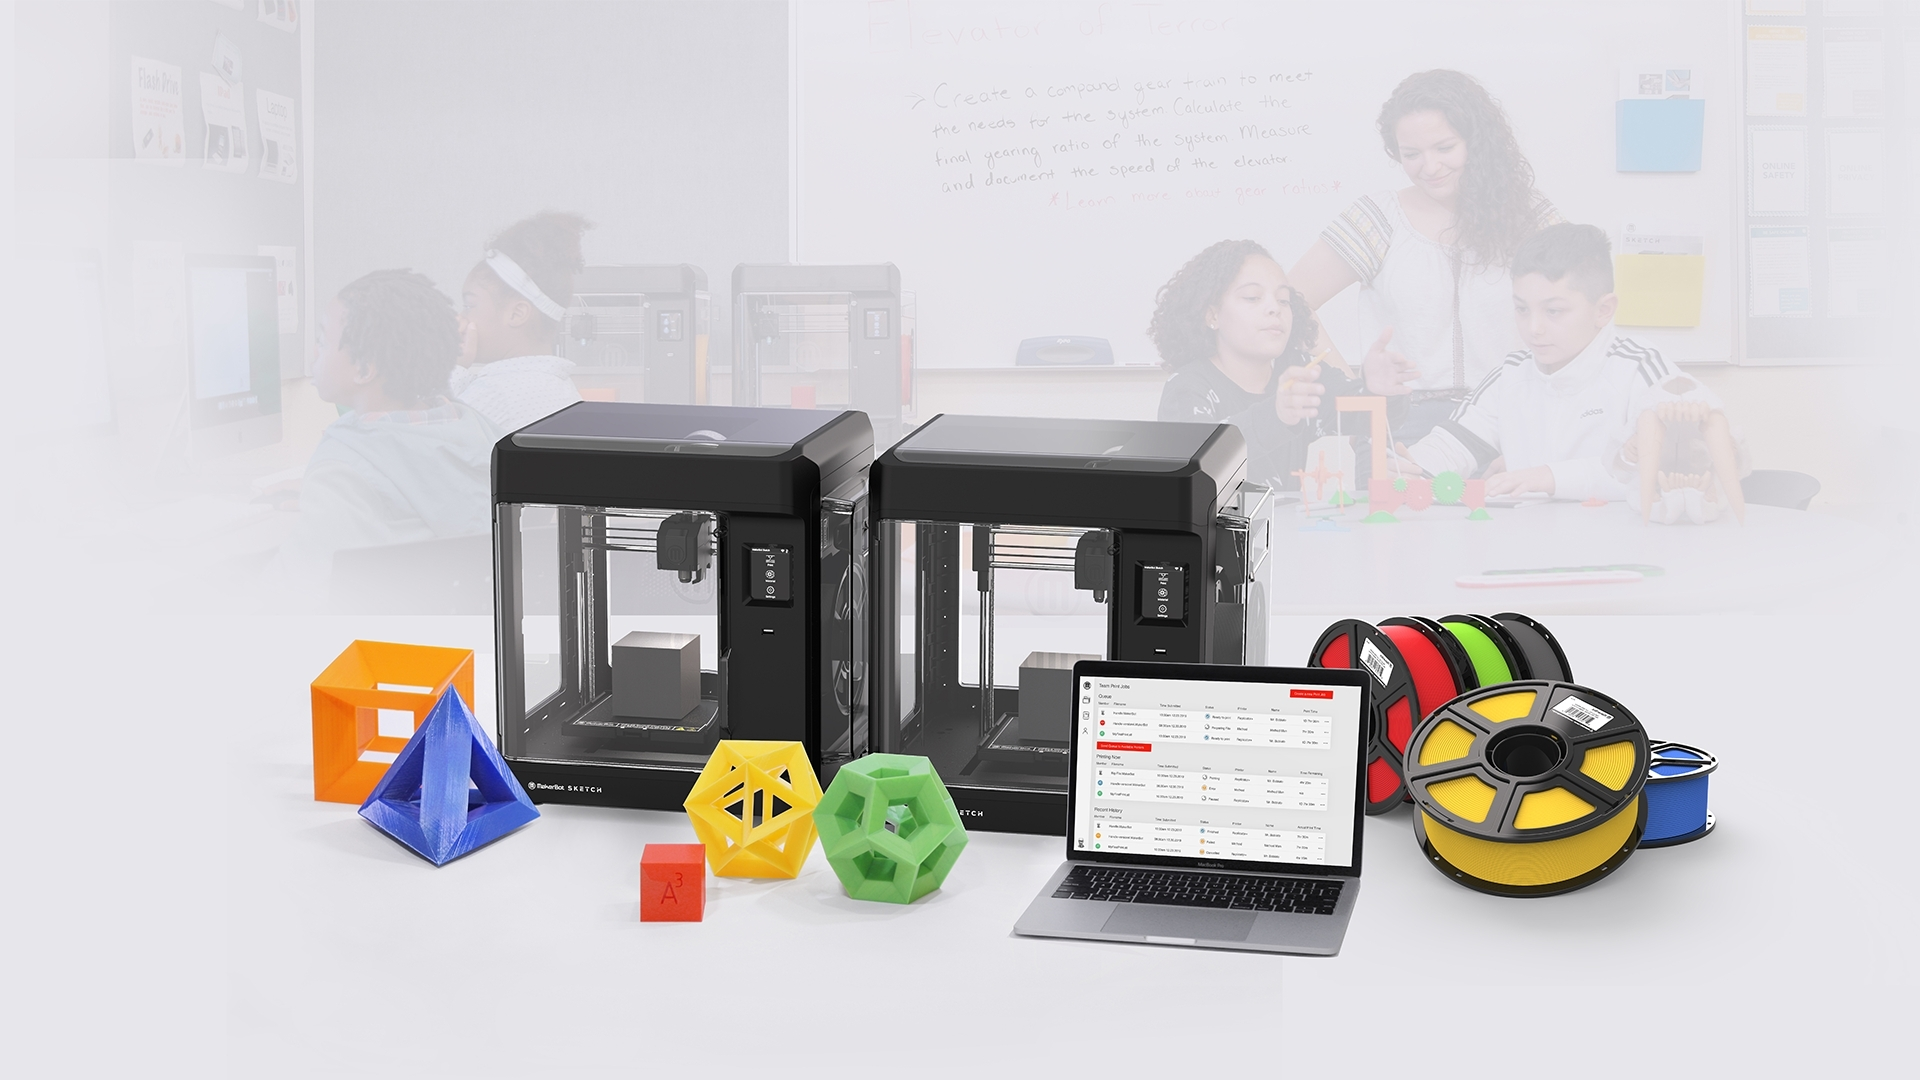 The MakerBot SKETCH Classroom. Image via MakerBot.